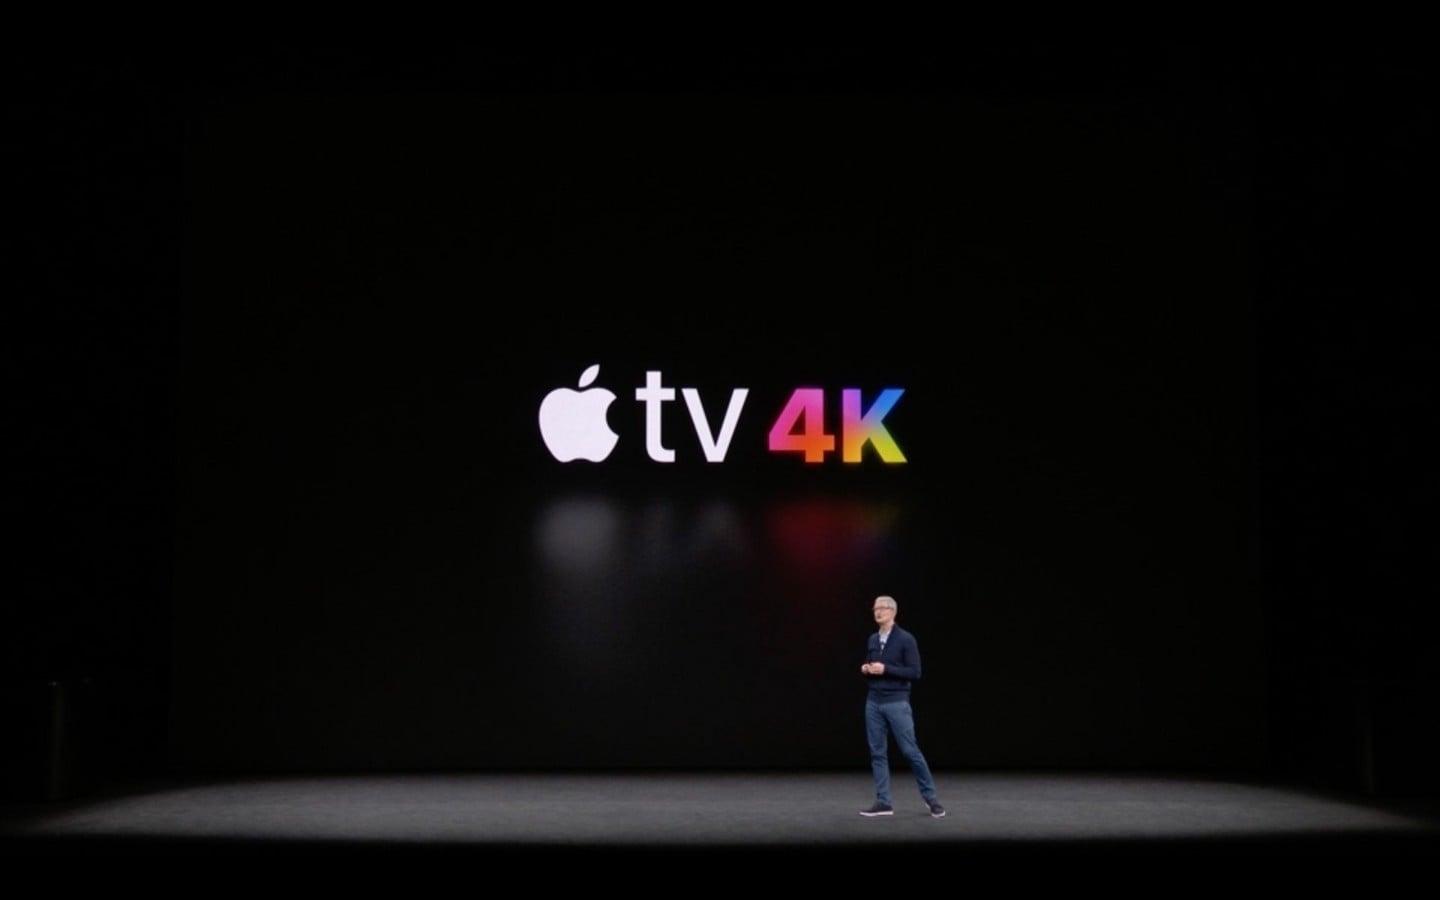 Apple TV 4K Has Finally Been Launched